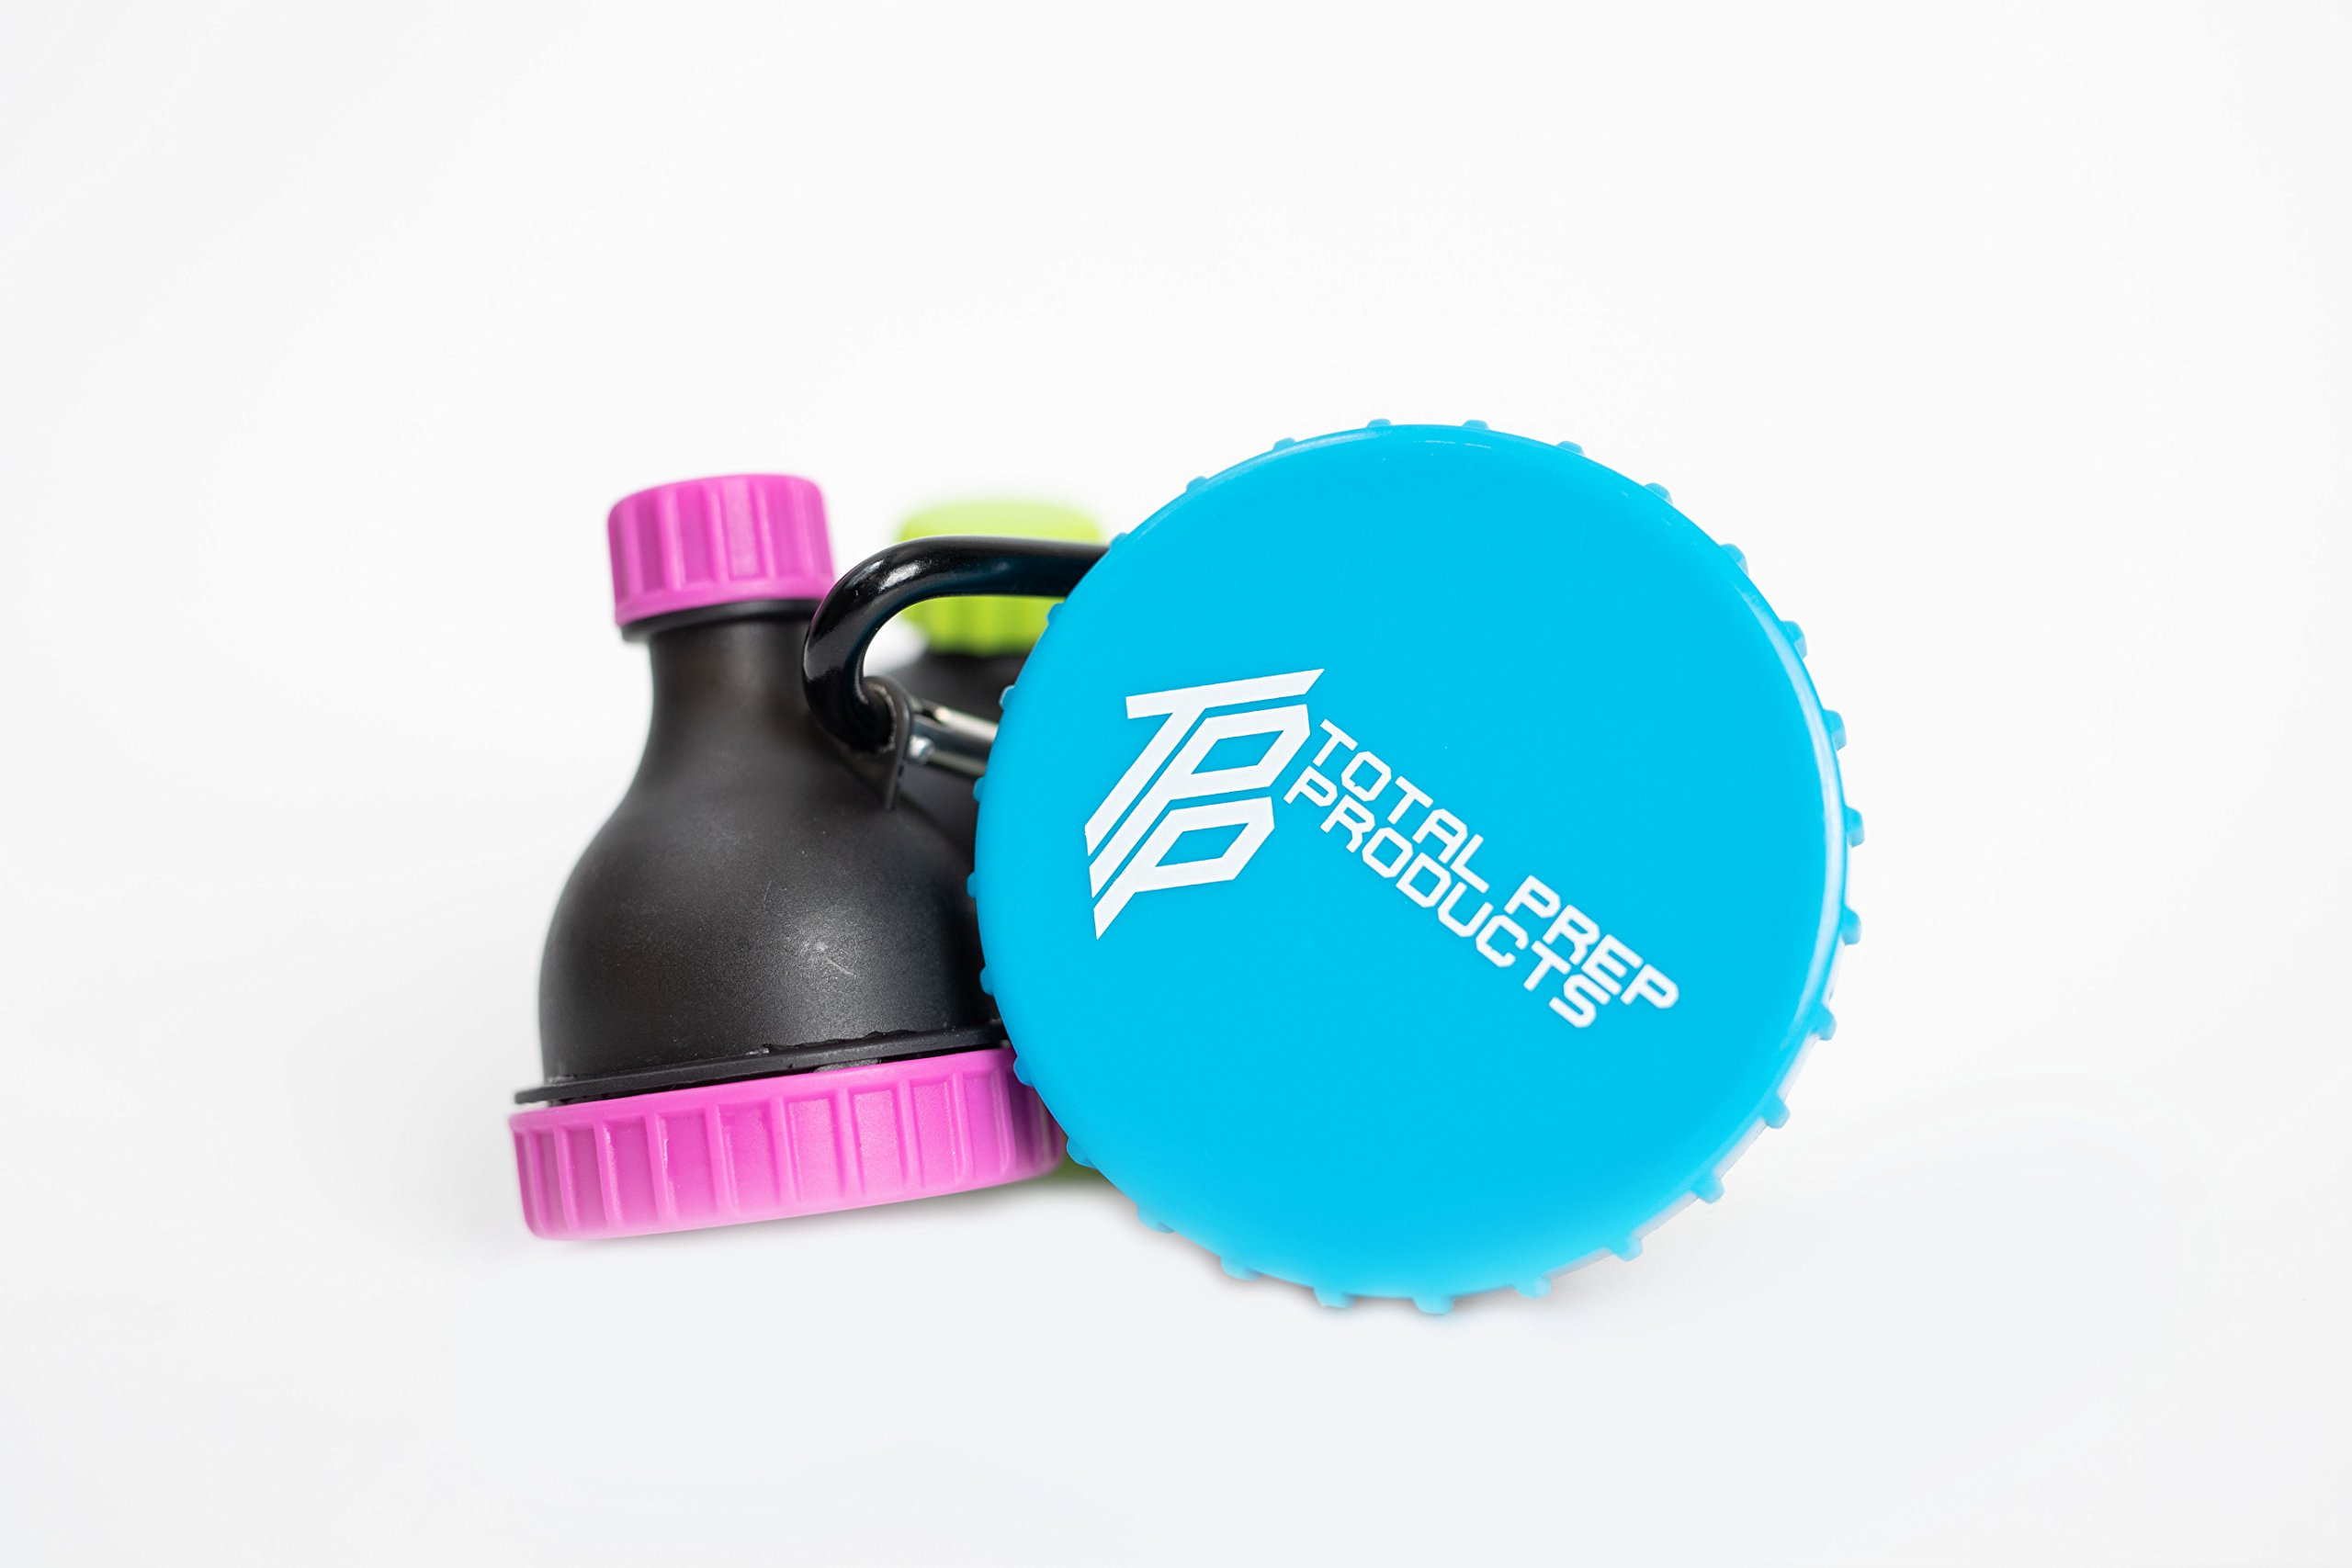 Total Prep Products Portable Protein Funnel BPA Free Non Toxic 3 Pack Multiple Colors by Total Prep Products (Image #3)